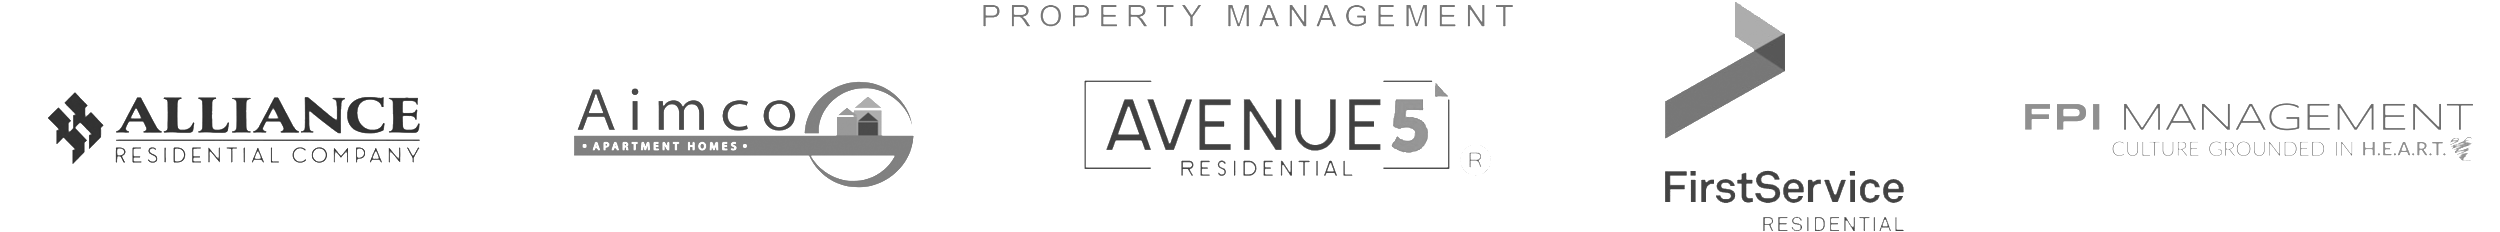 Property Management: Alliance Residential, Aimco, Avenue5 Residential, FirstService Residential, and FPI Management Logos